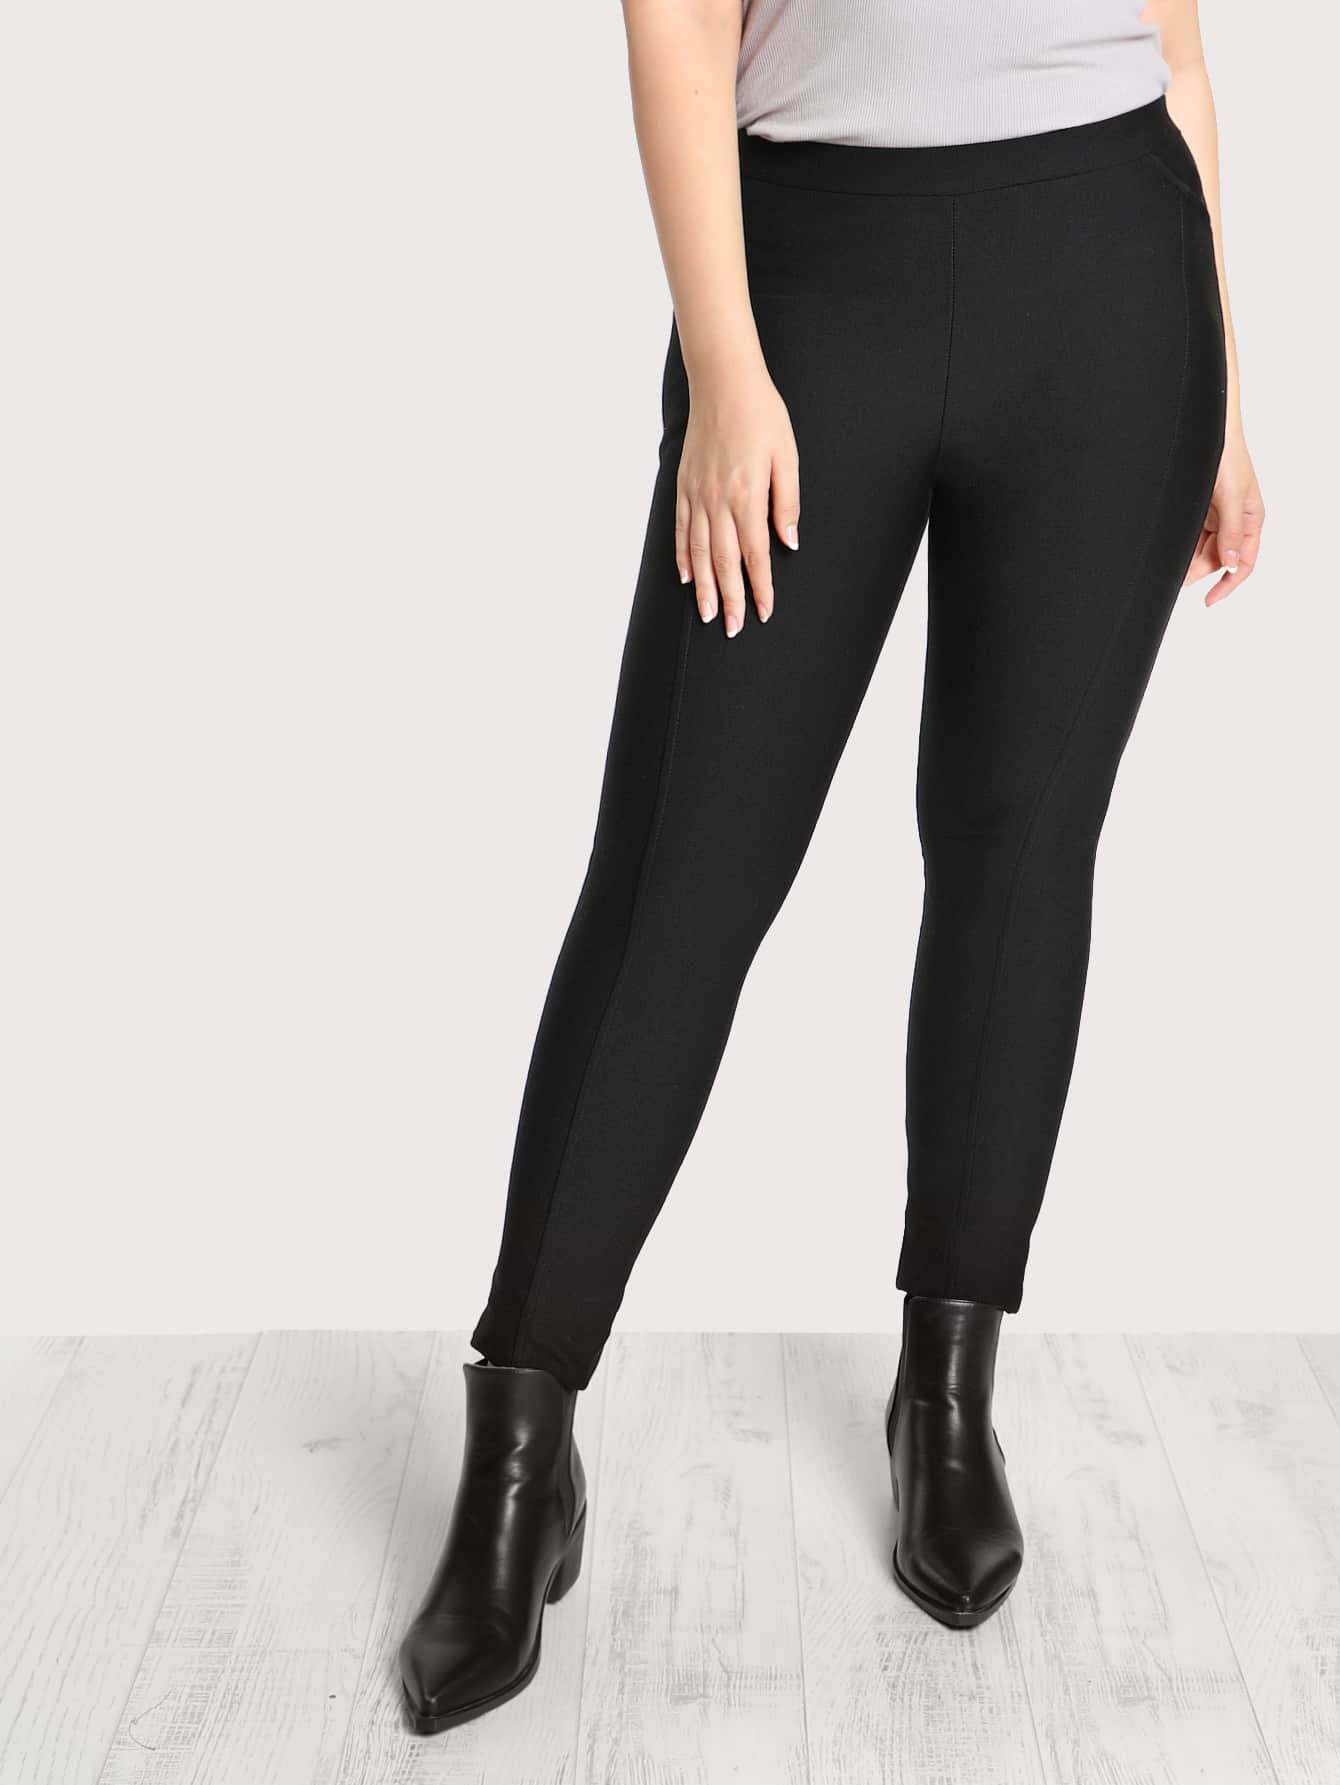 Image of Elasticized Waist Cigarette Pants